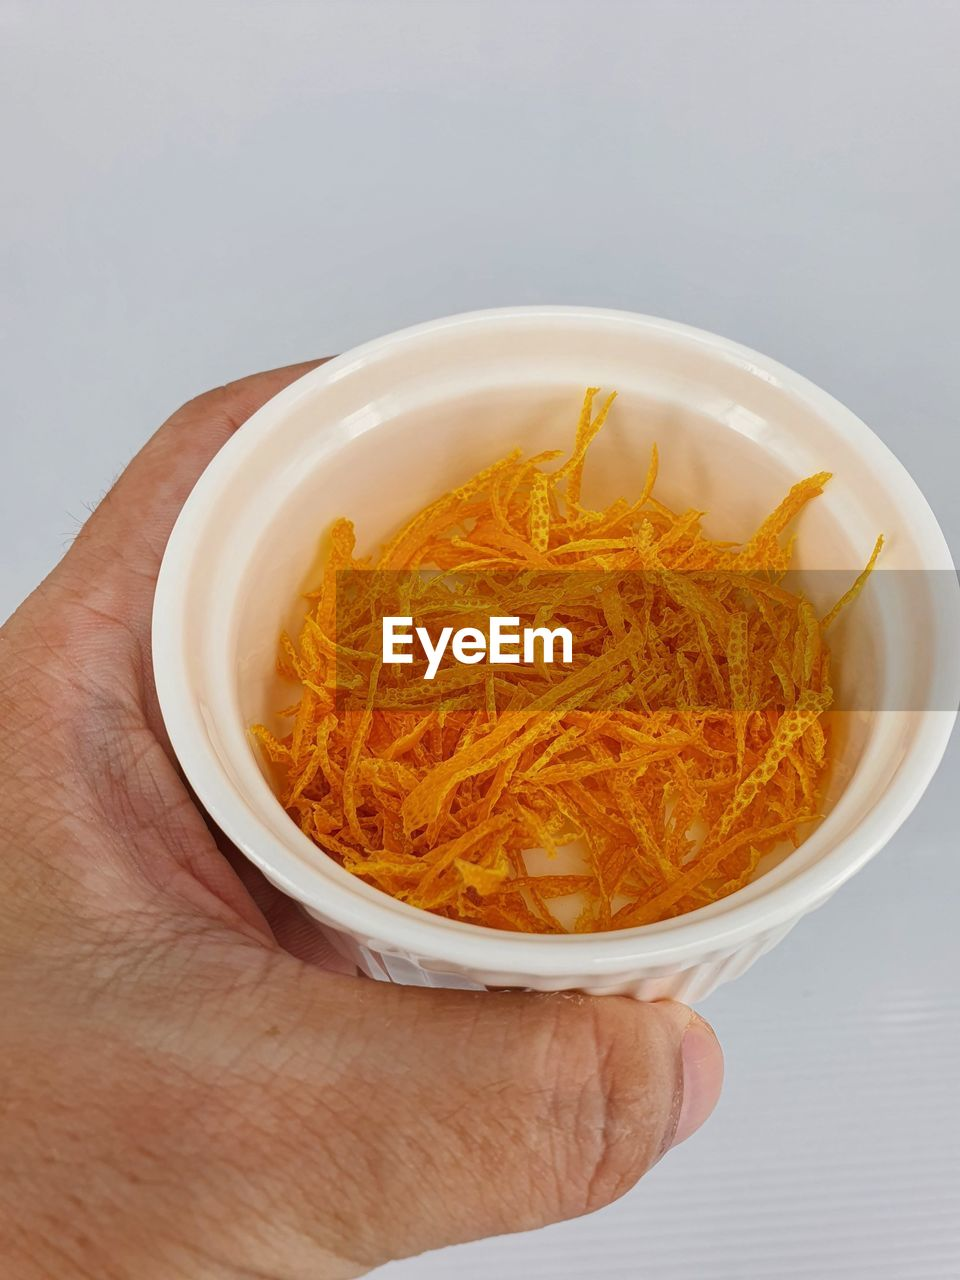 CLOSE-UP OF HAND HOLDING BOWL OF NOODLES